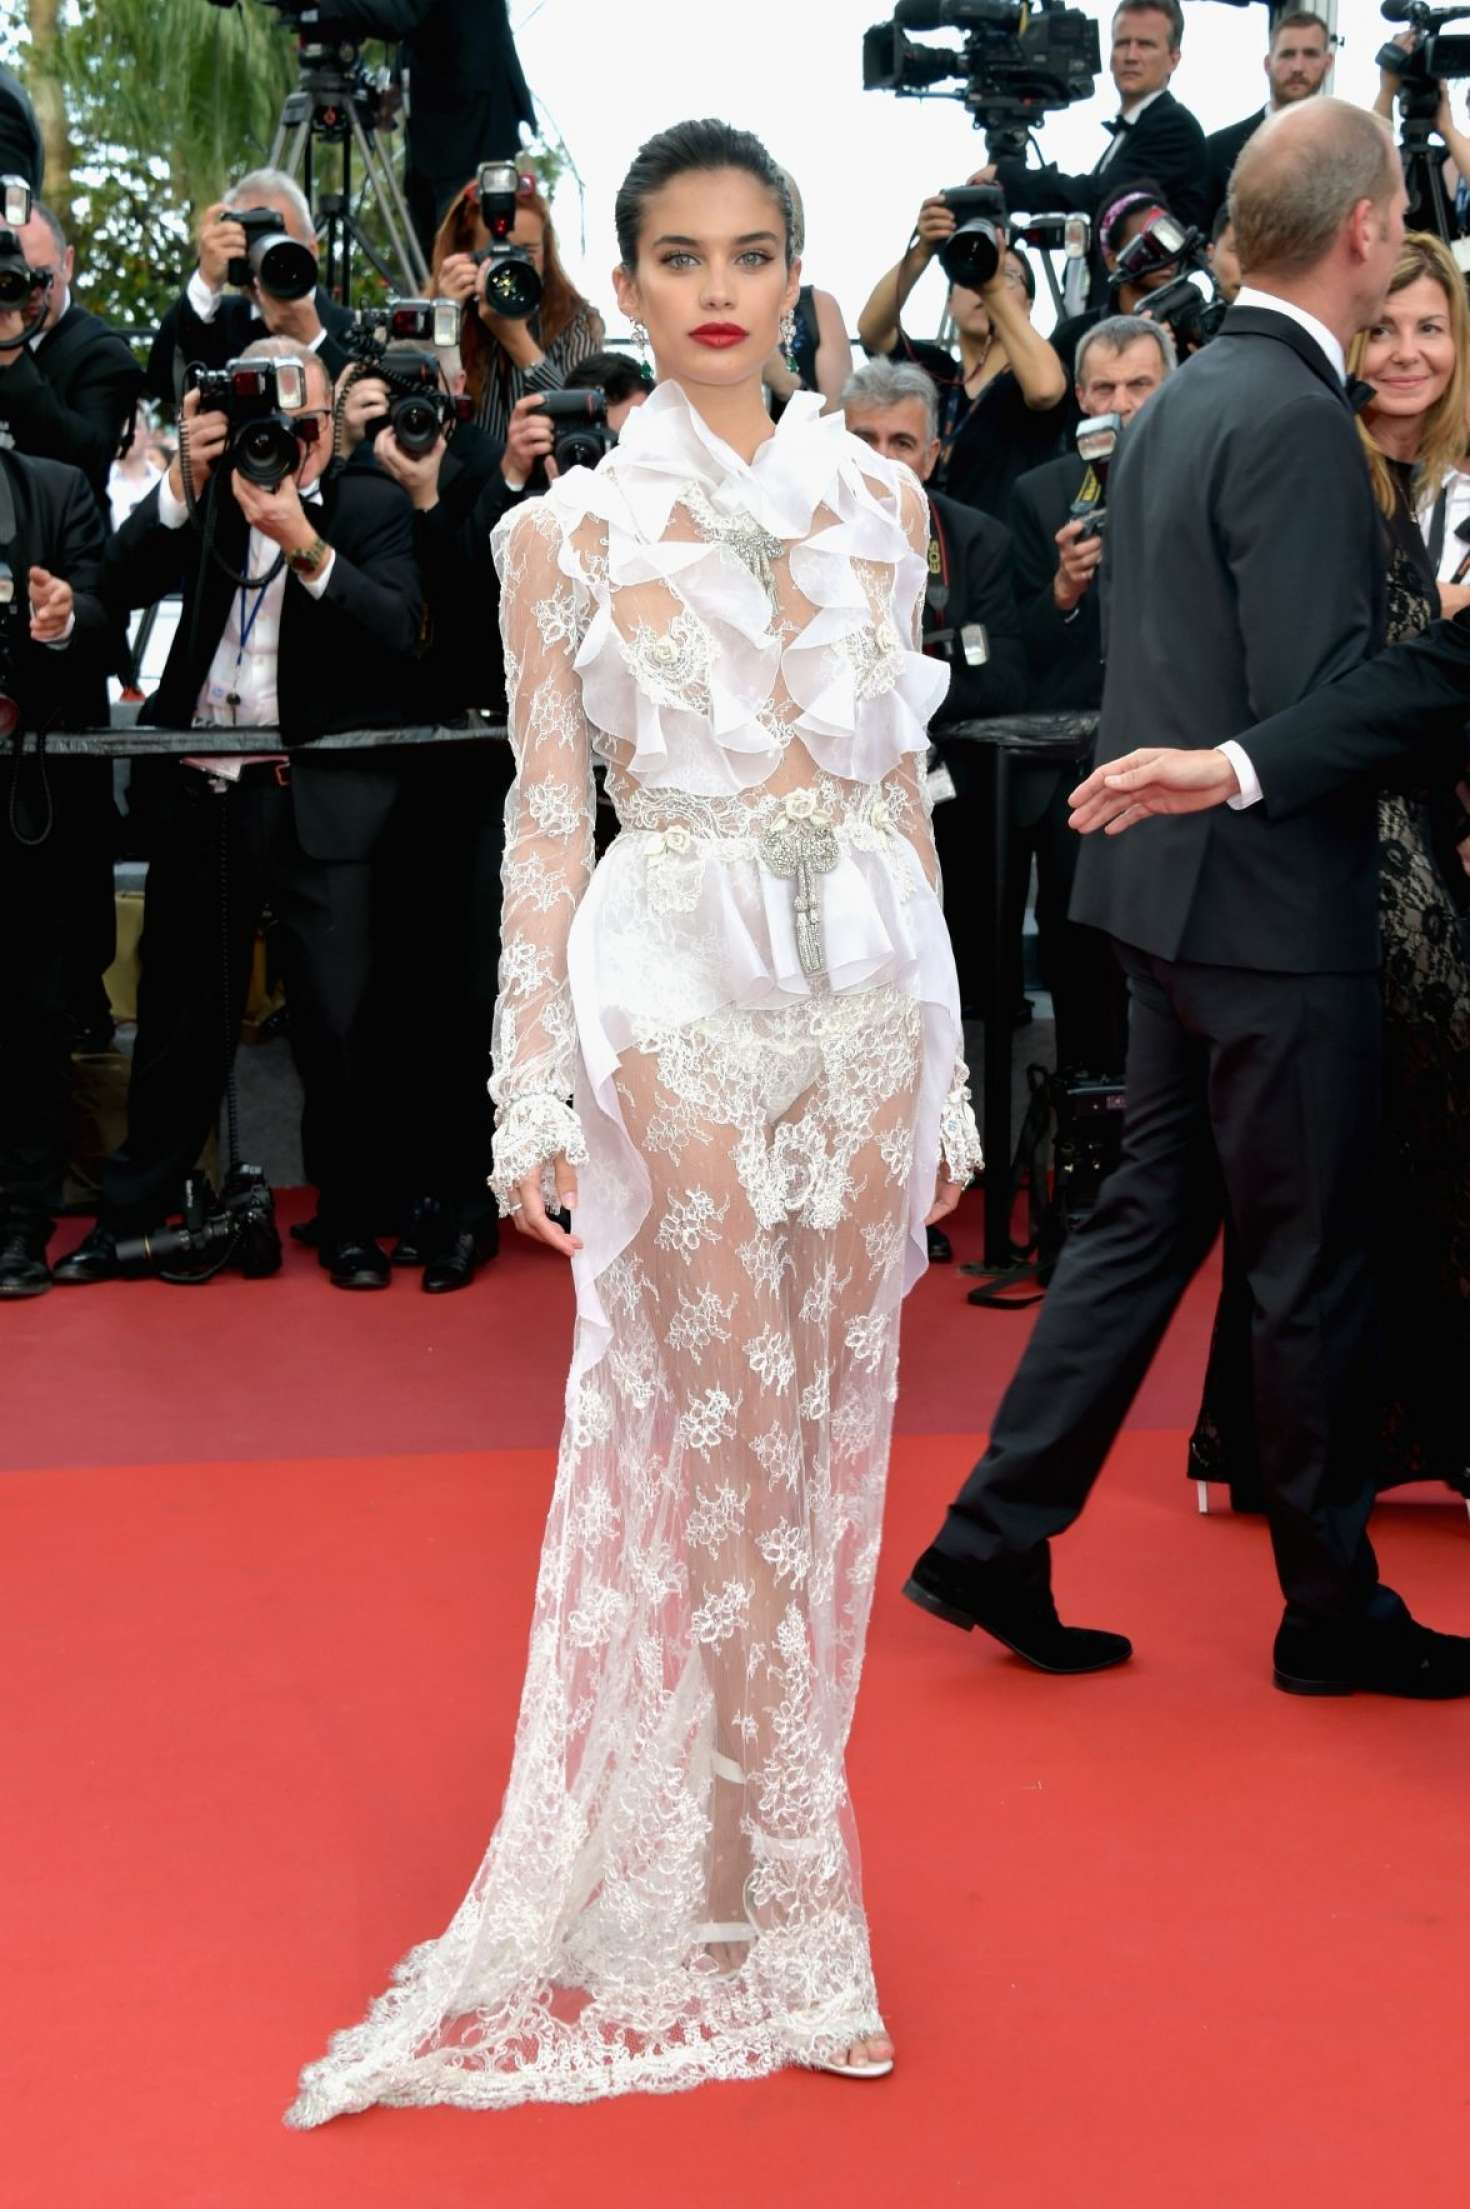 Sara Sampaio – 'The Killing of a Sacred Deer' Premiere at 70th Cannes Film Festival   Sara-Sampaio:-The-Killing-of-a-Sacred-Deer-Premiere-at-70th-Cannes-Film-Festival--04